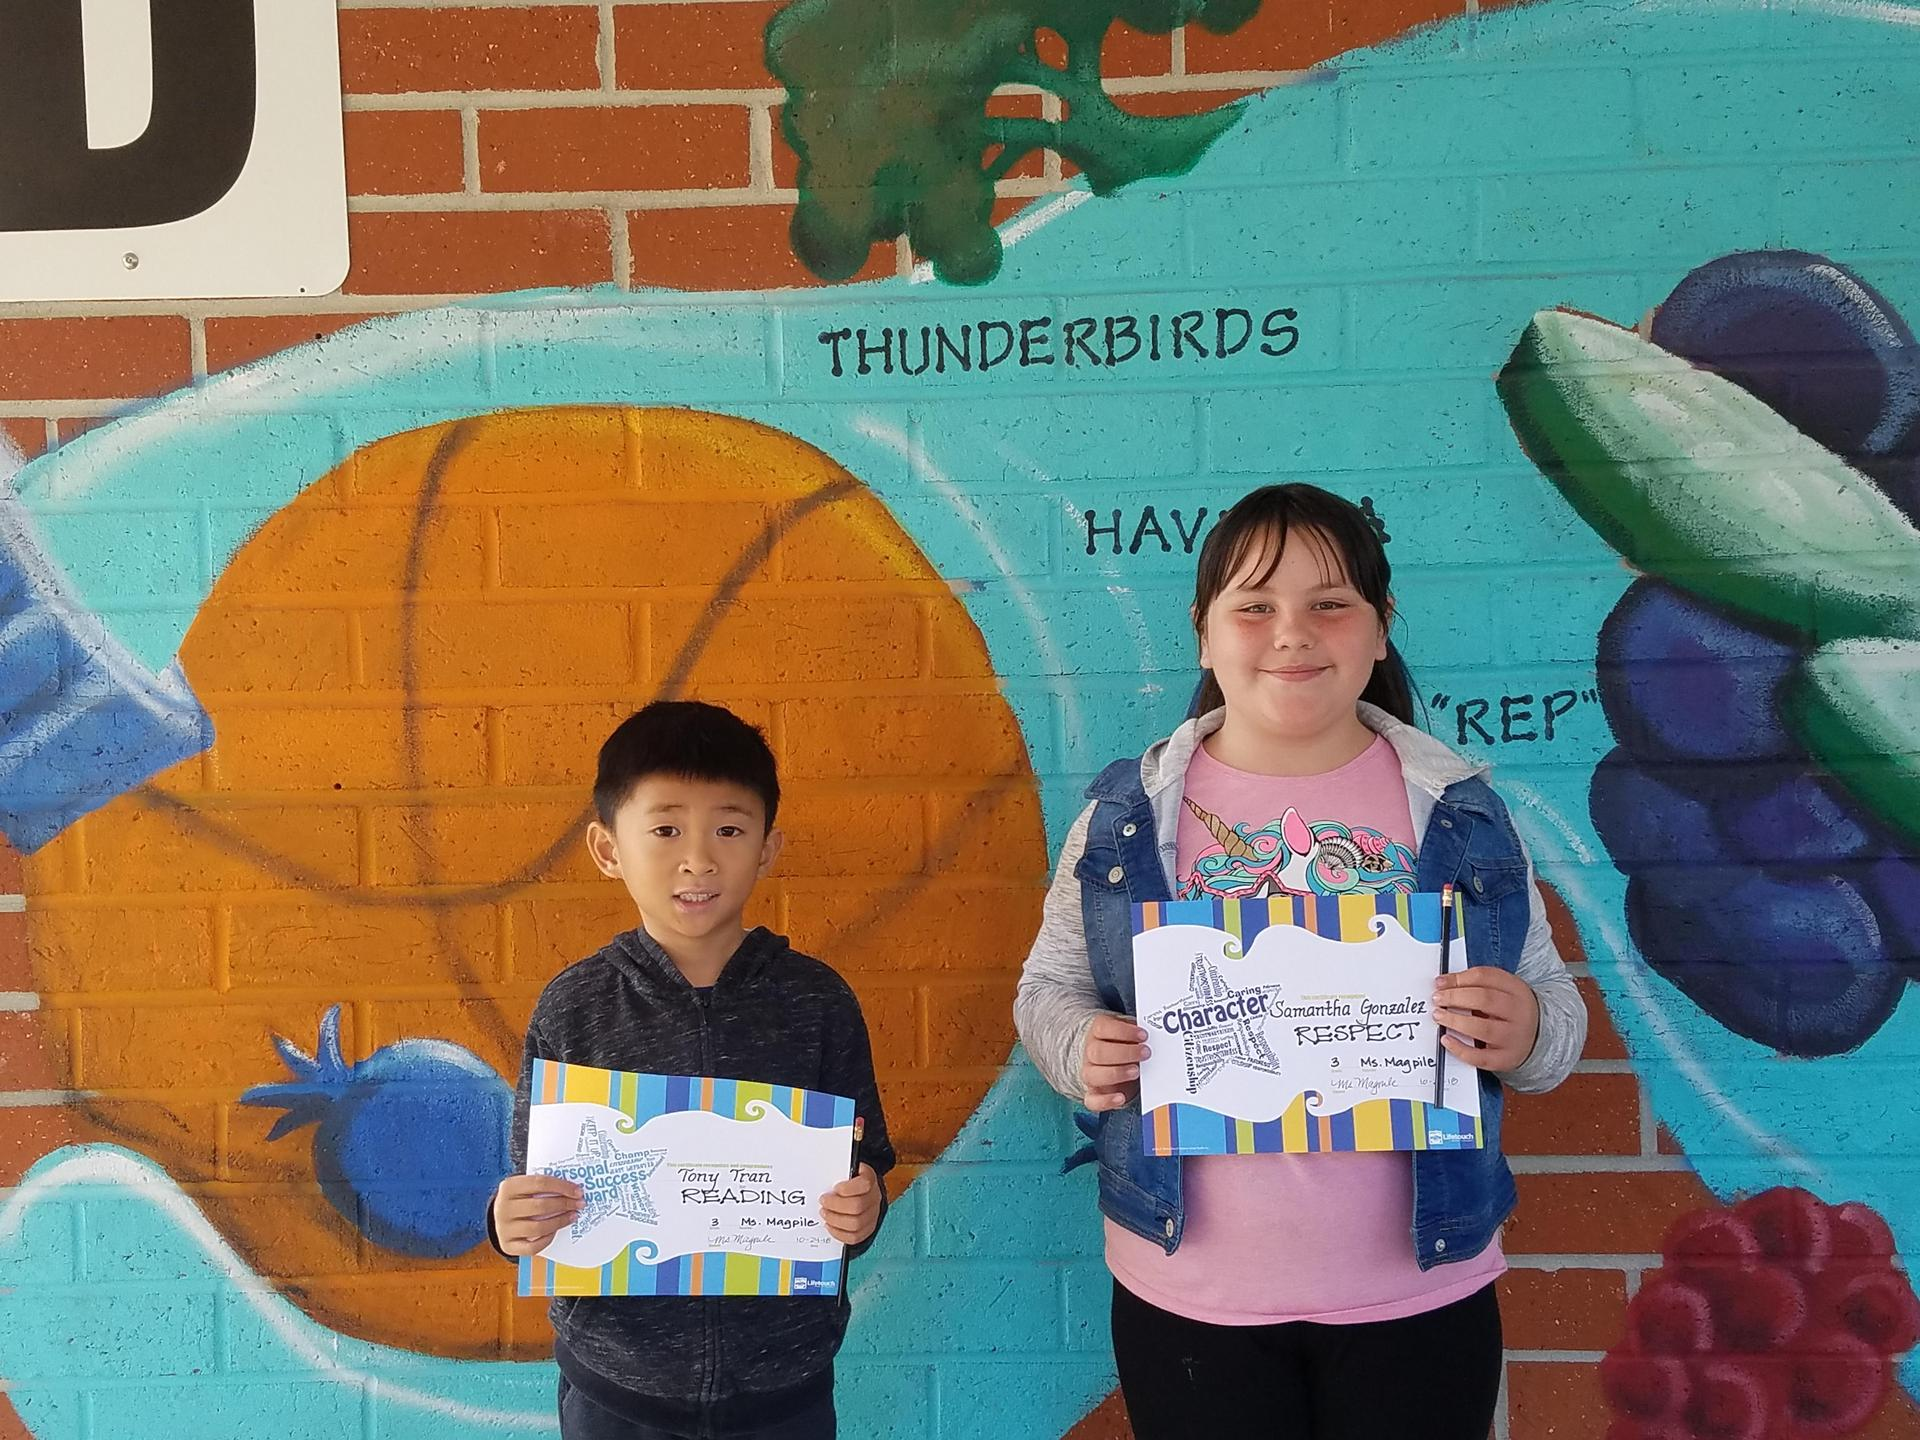 Ms. Magpile's Winners